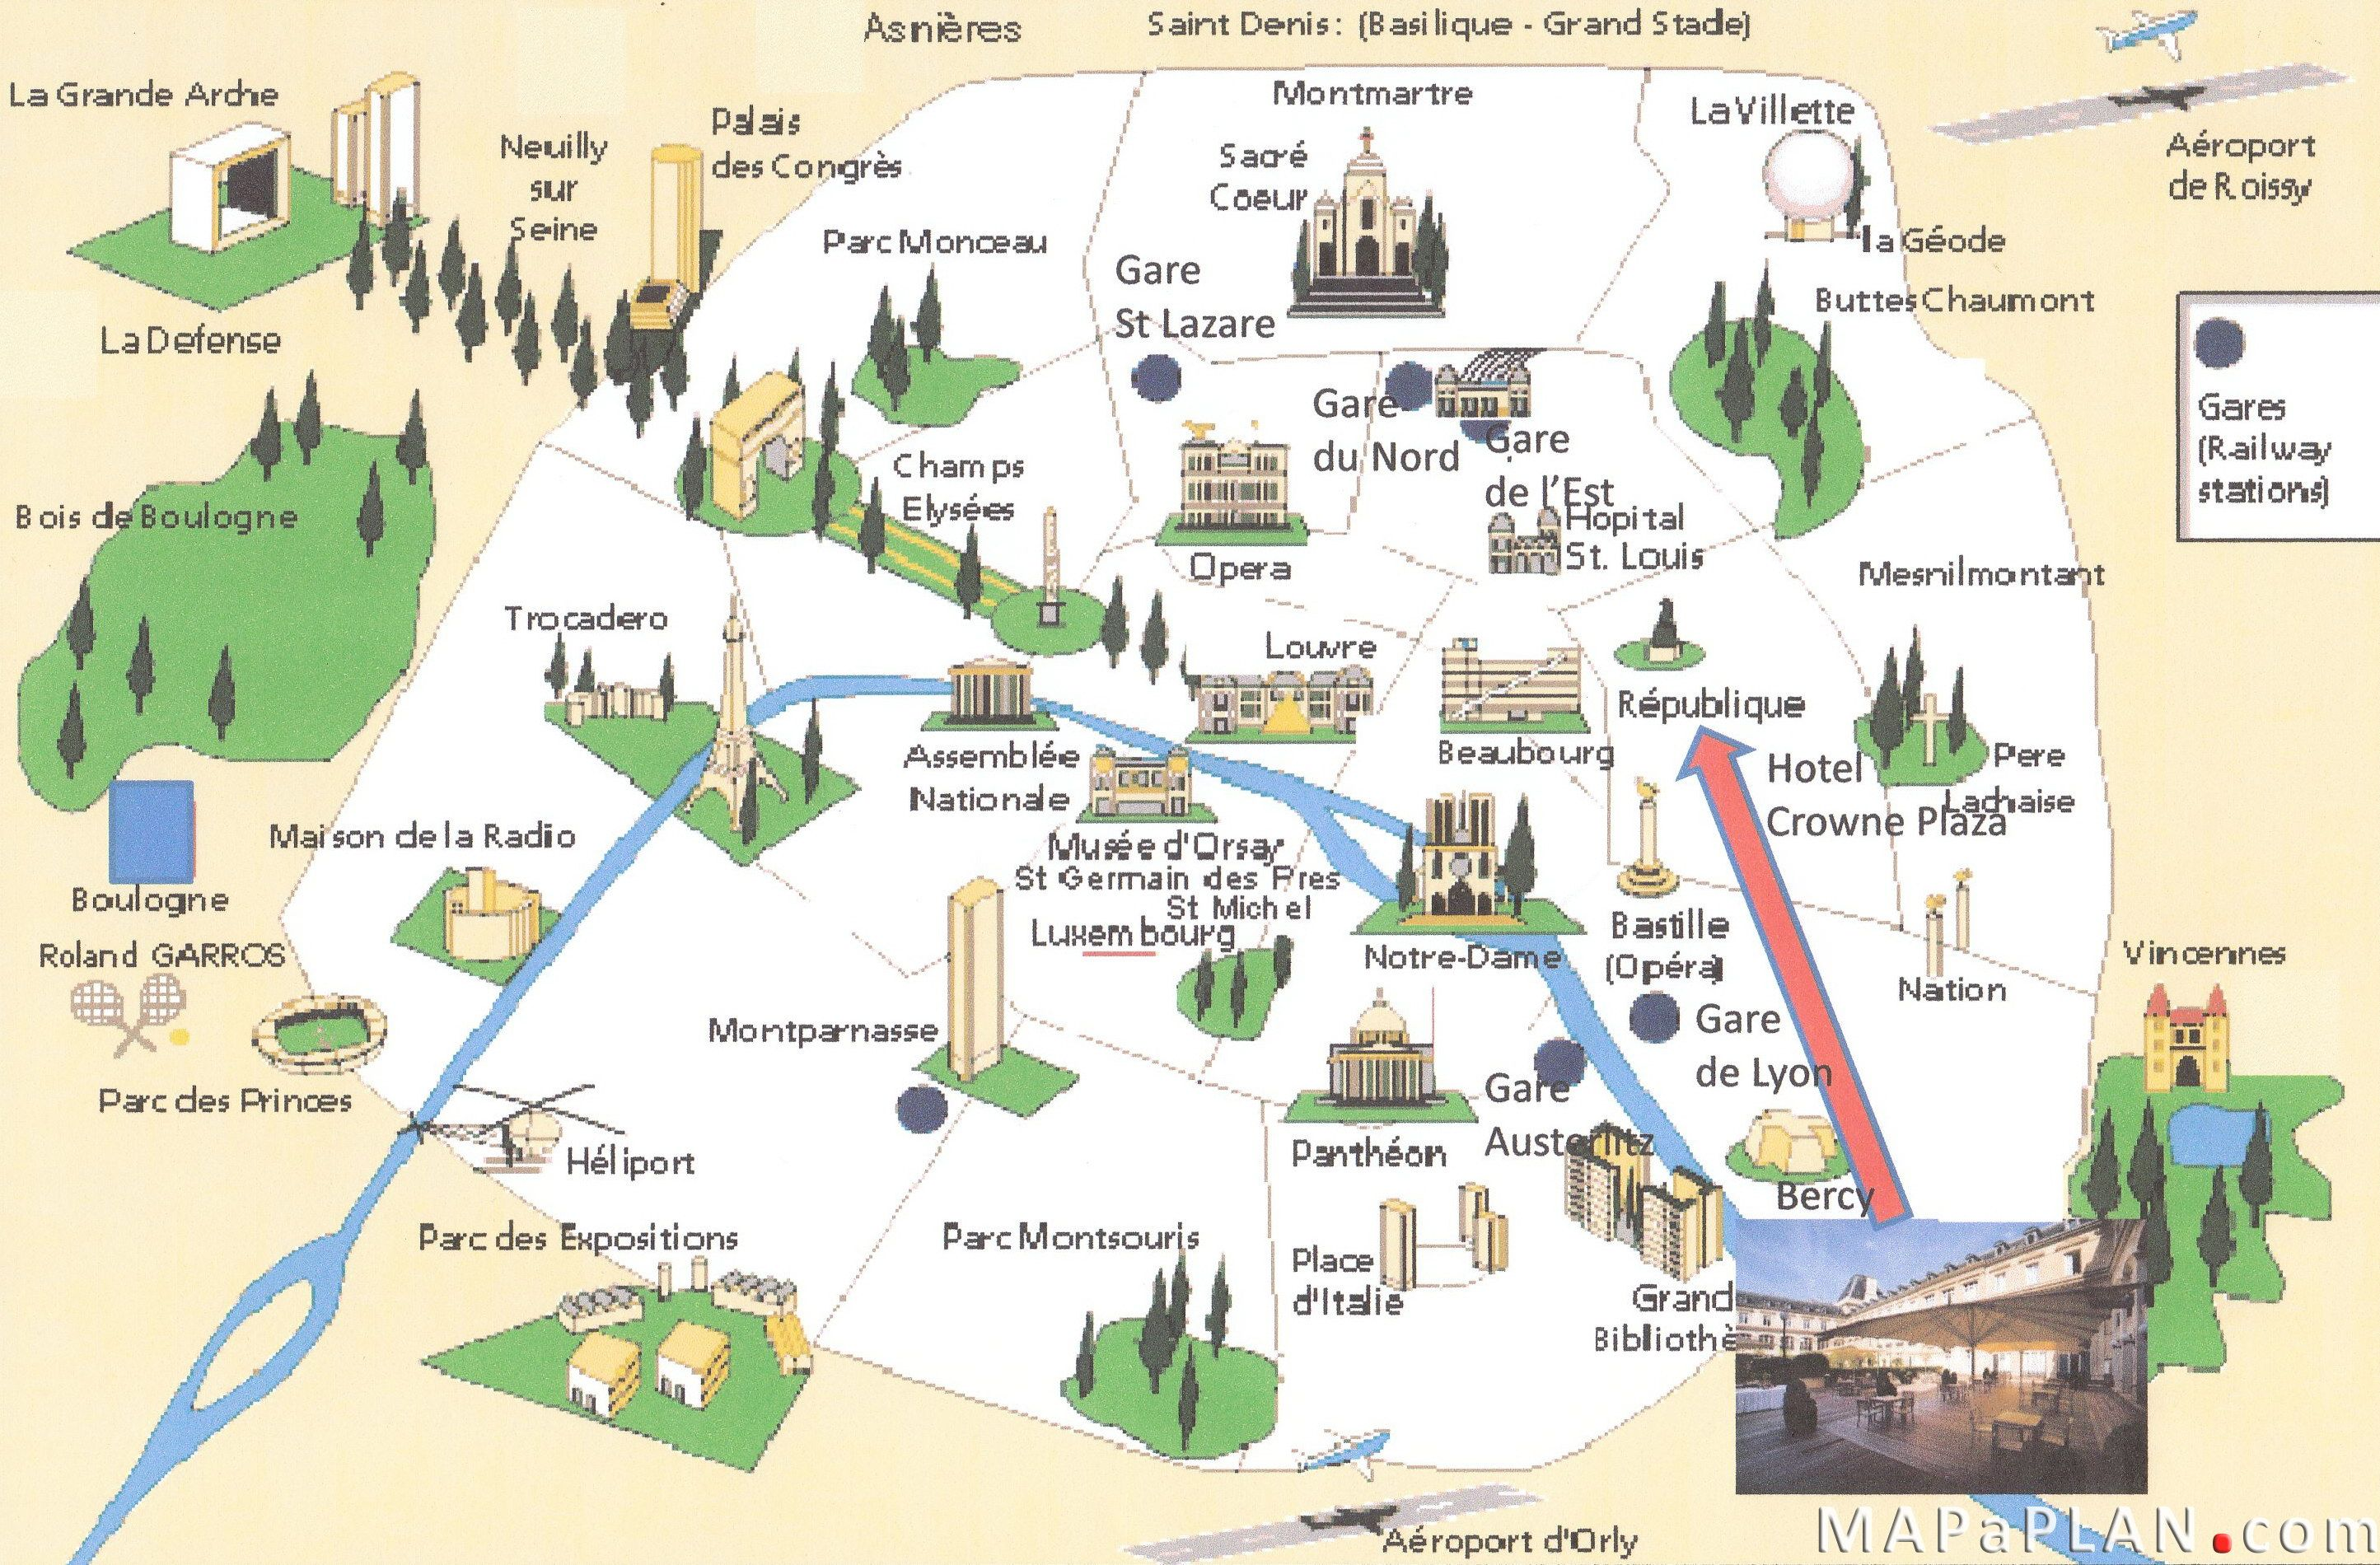 Paris top tourist attractions map Landmarks aerial birds eye view